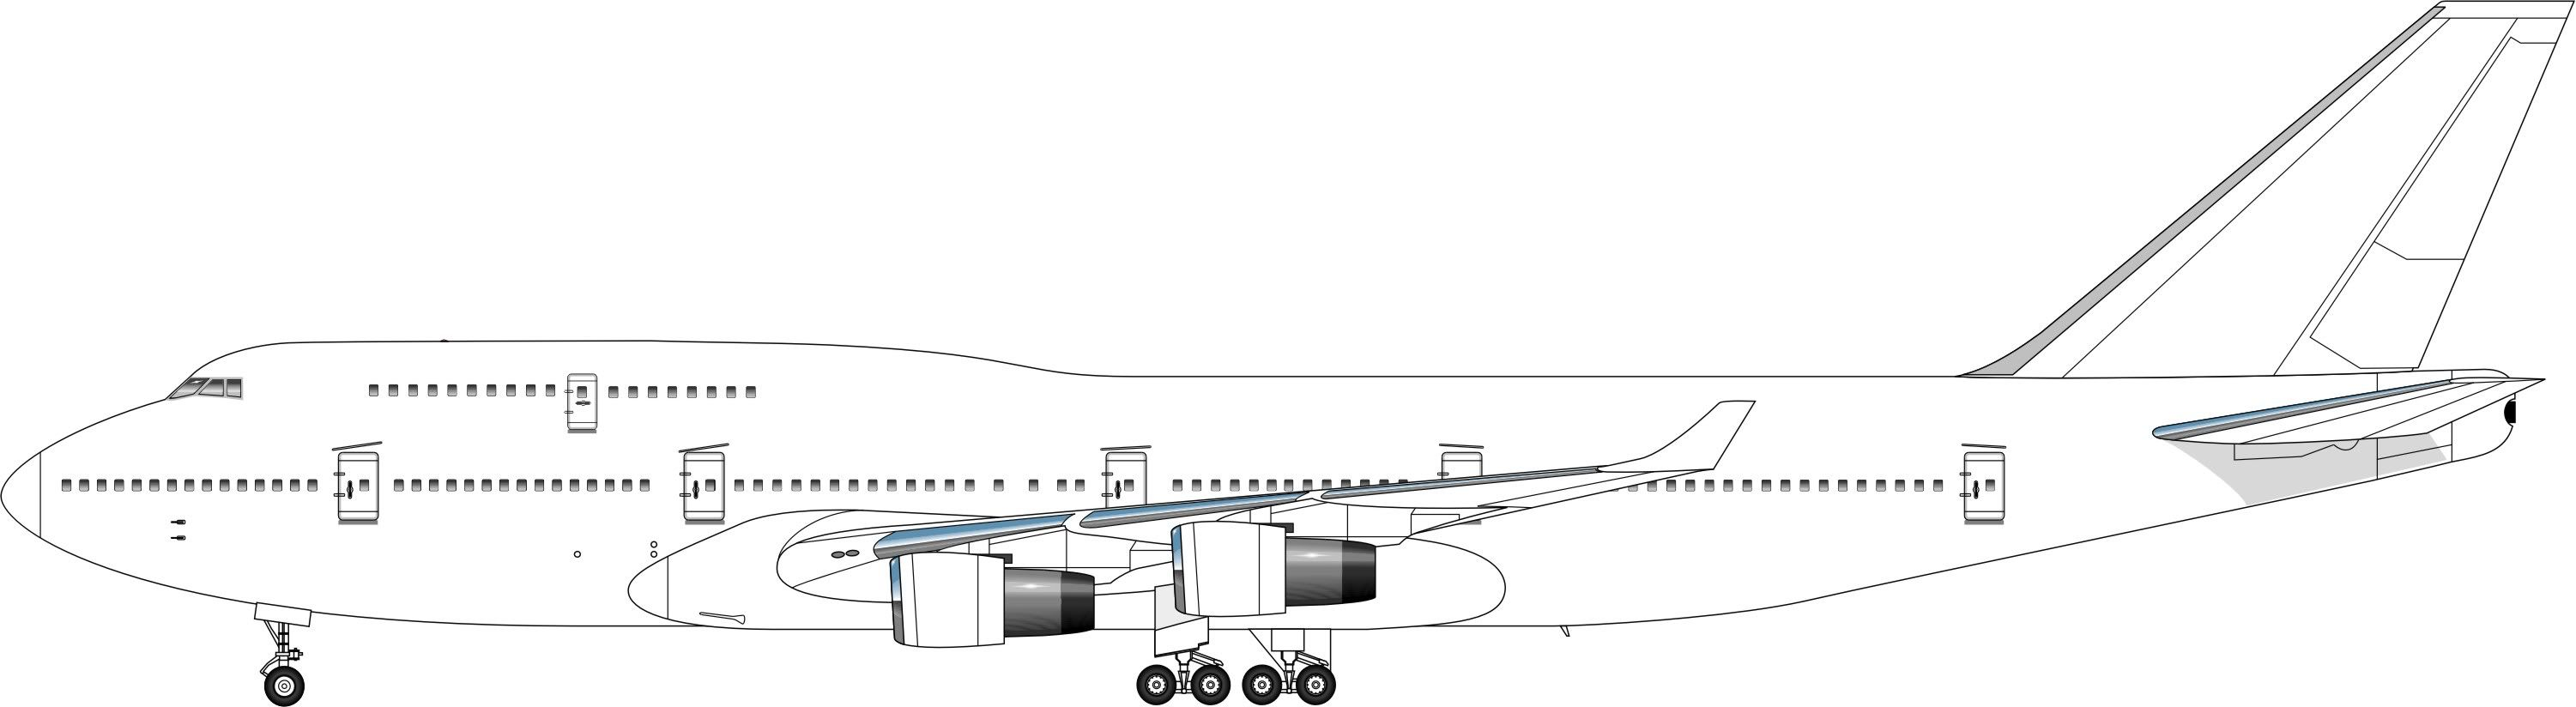 boeing 777 coloring page airplanes coloring pages free printable colouring pages 777 coloring boeing page